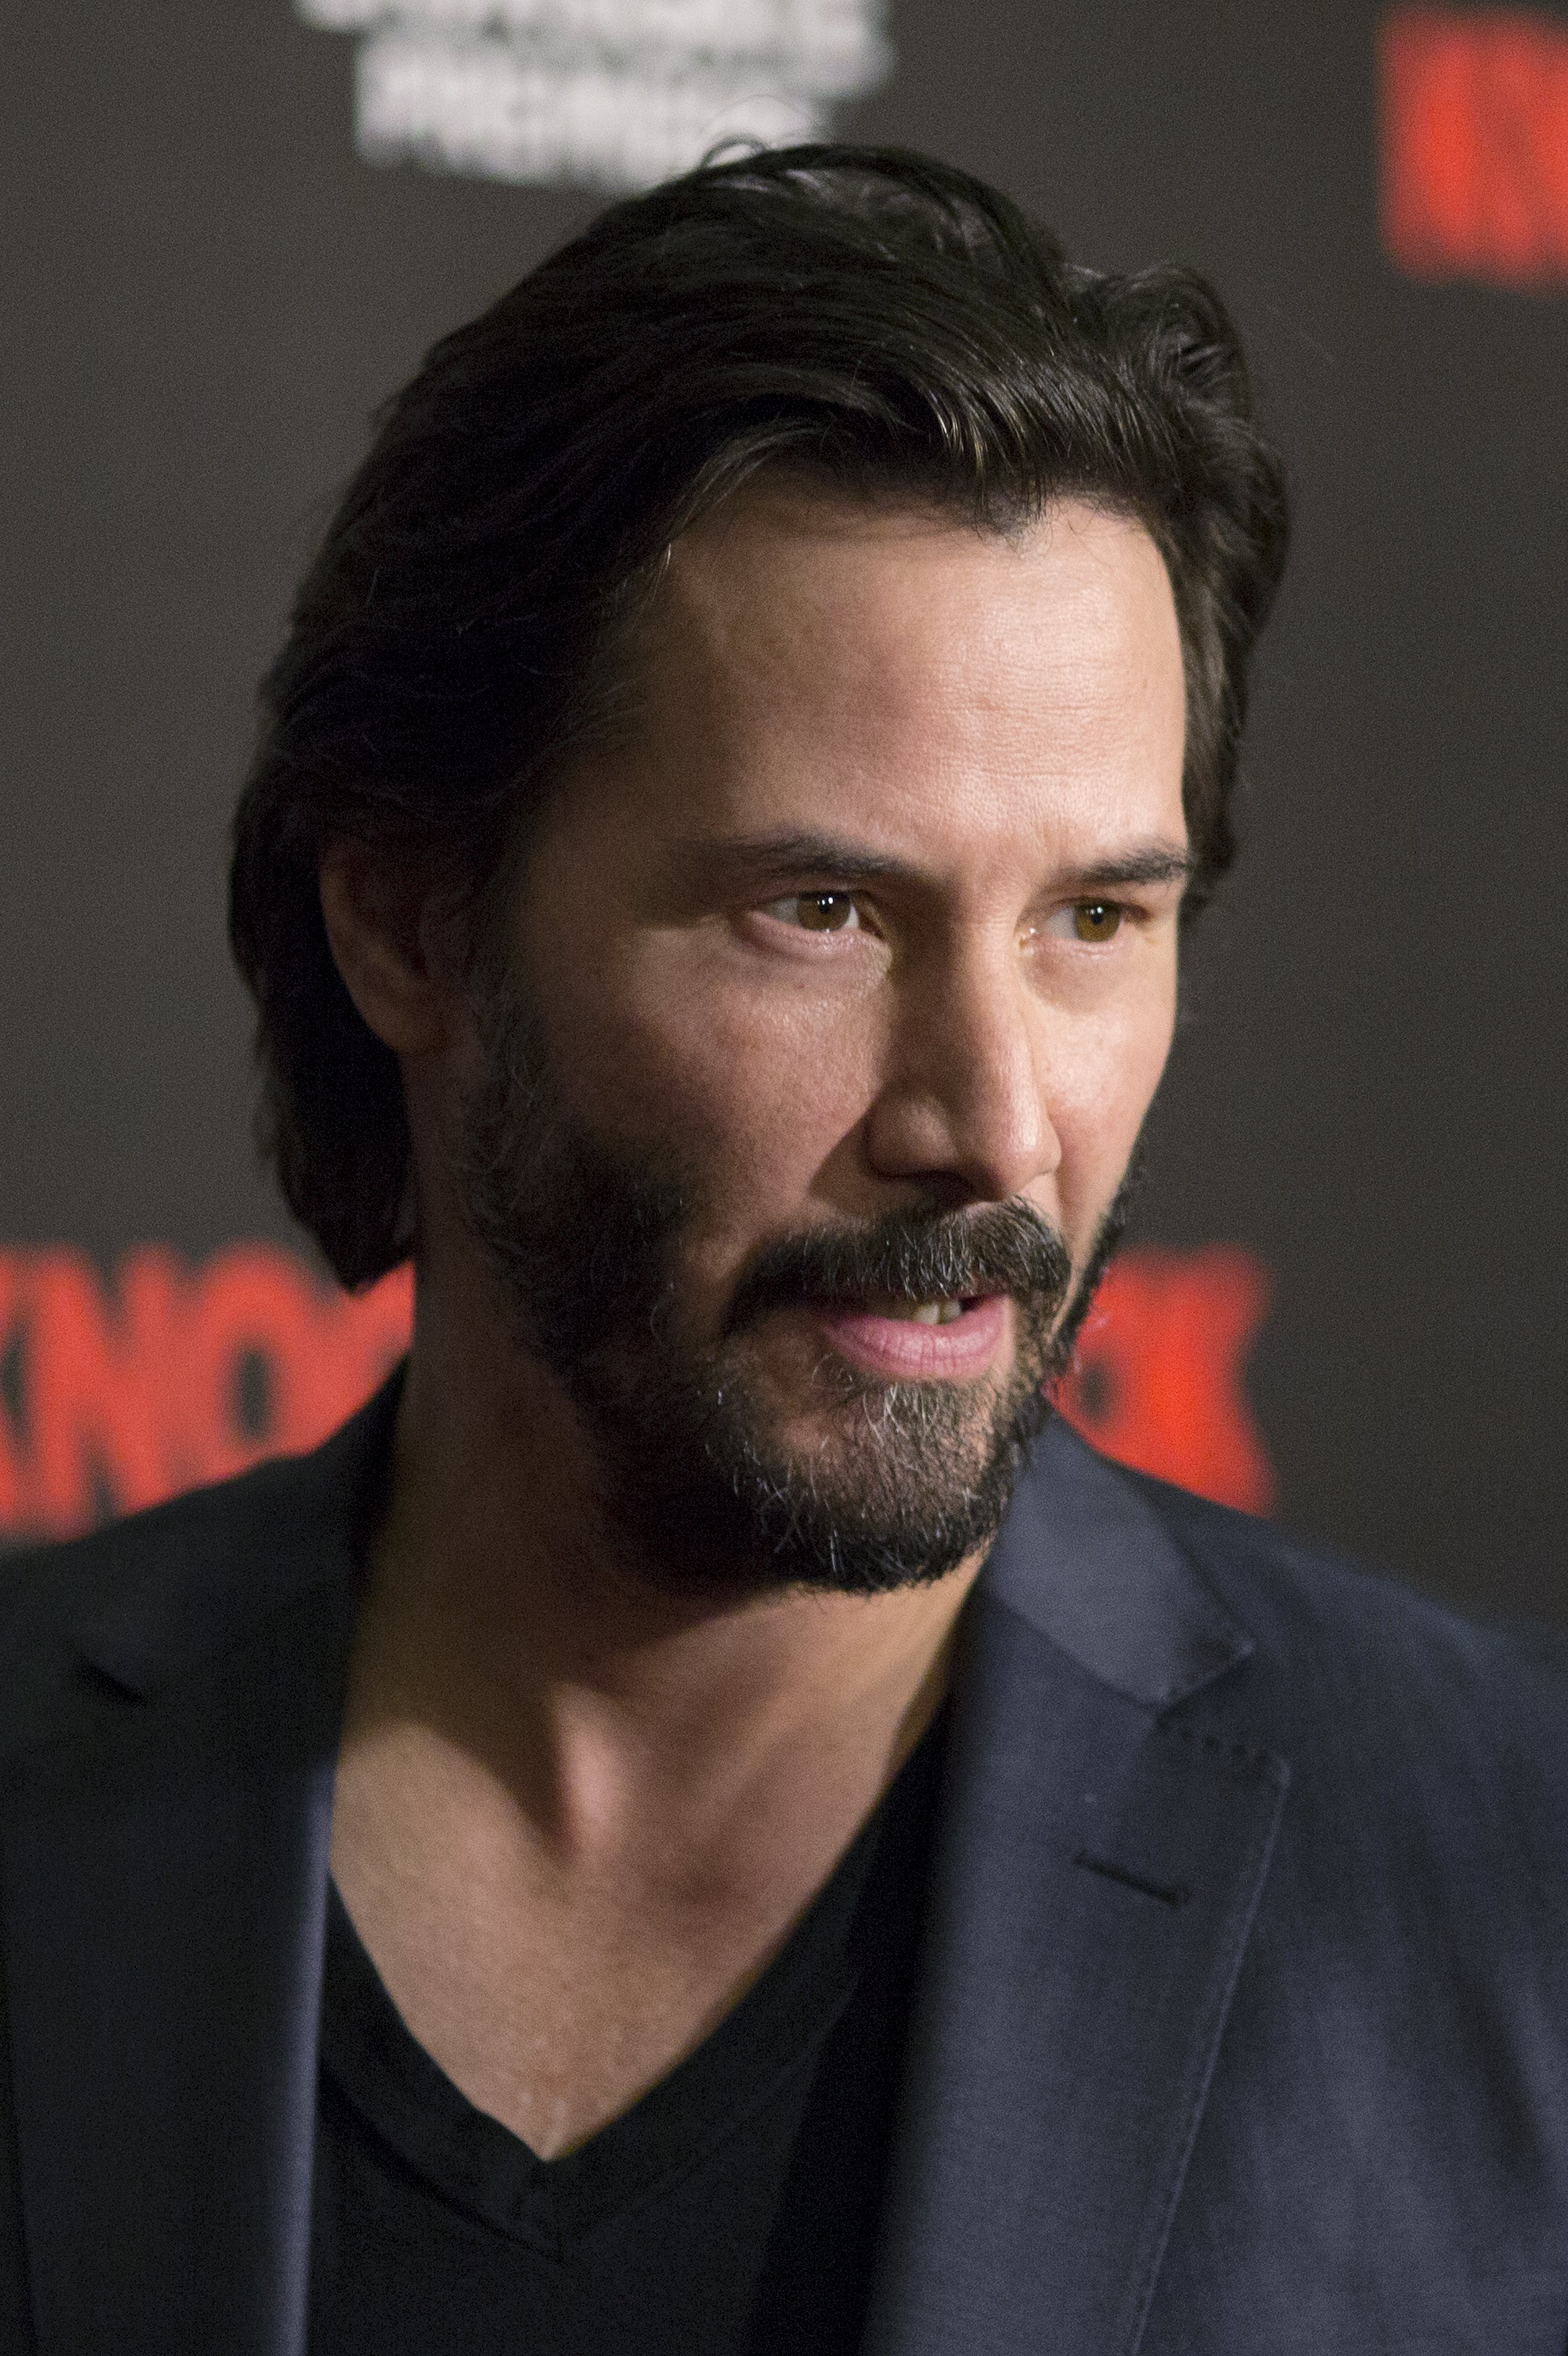 """ActorKeanuReevesarrives for the Los Angeles special screening of """"Knock Knock"""" in the Hollywood section of Los Angeles, California October 7, 2015. David McNew / Reuters"""